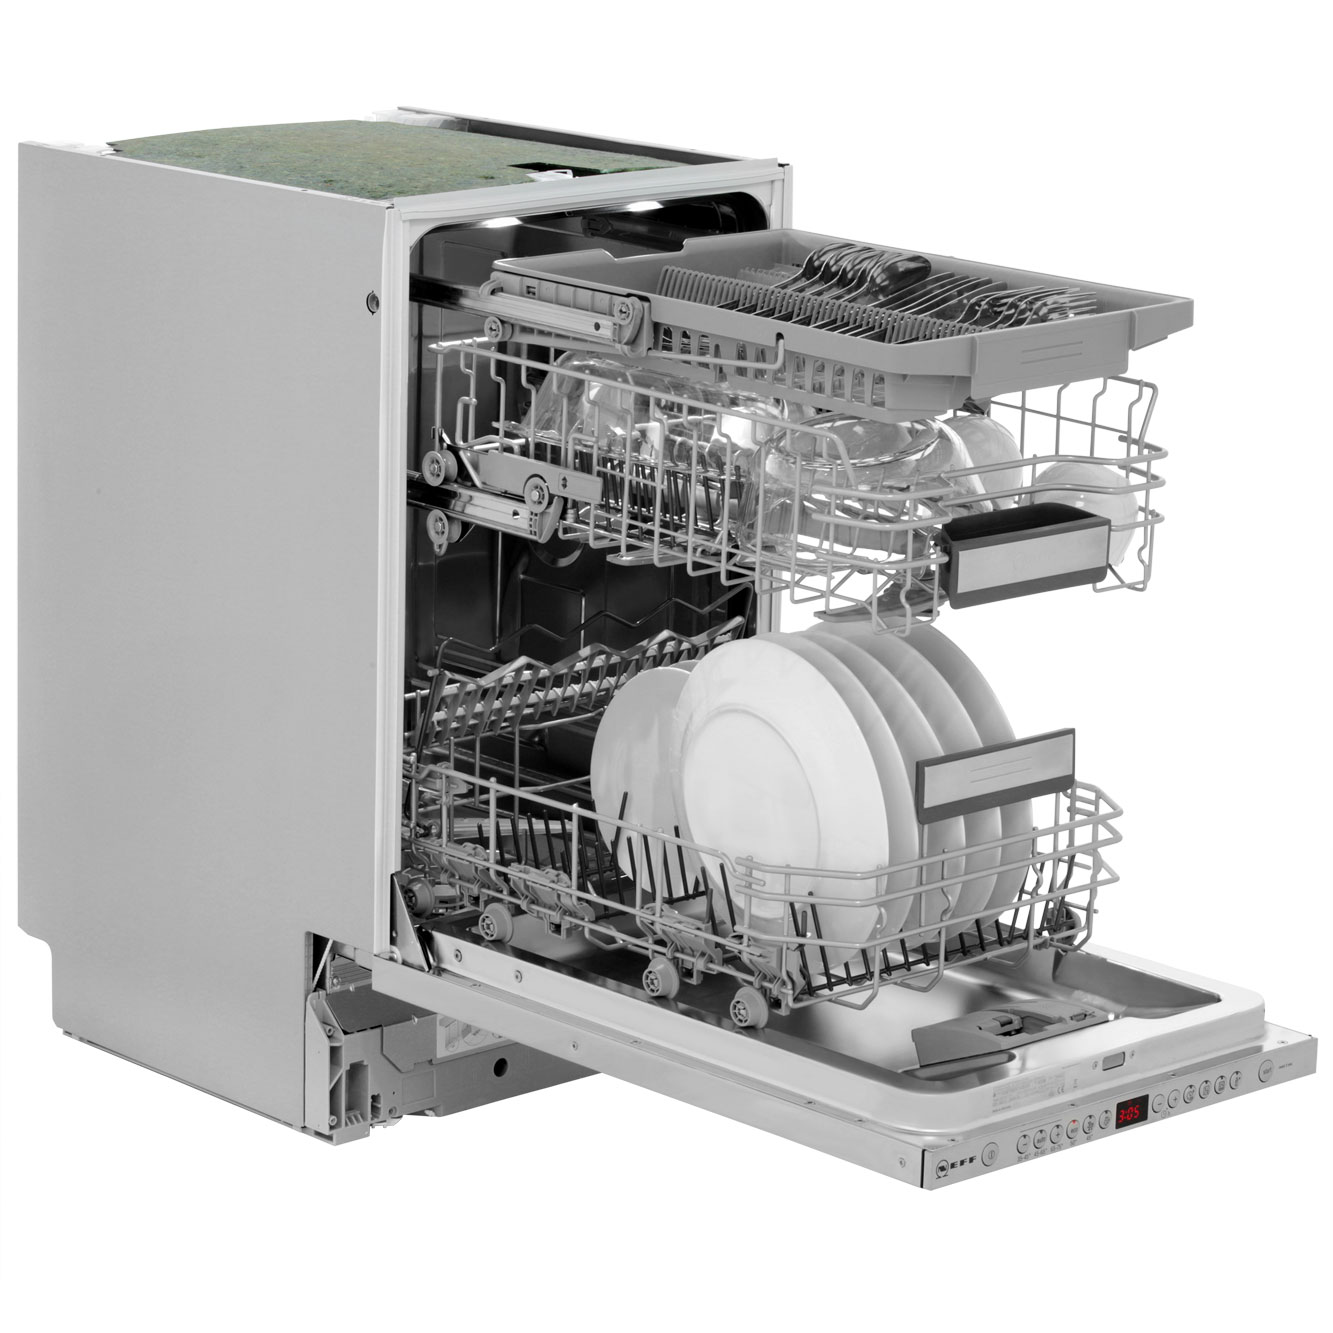 Small Dish Washer Neff S58t69x1gb Fully Integrated Slimline Dishwasher Stainless